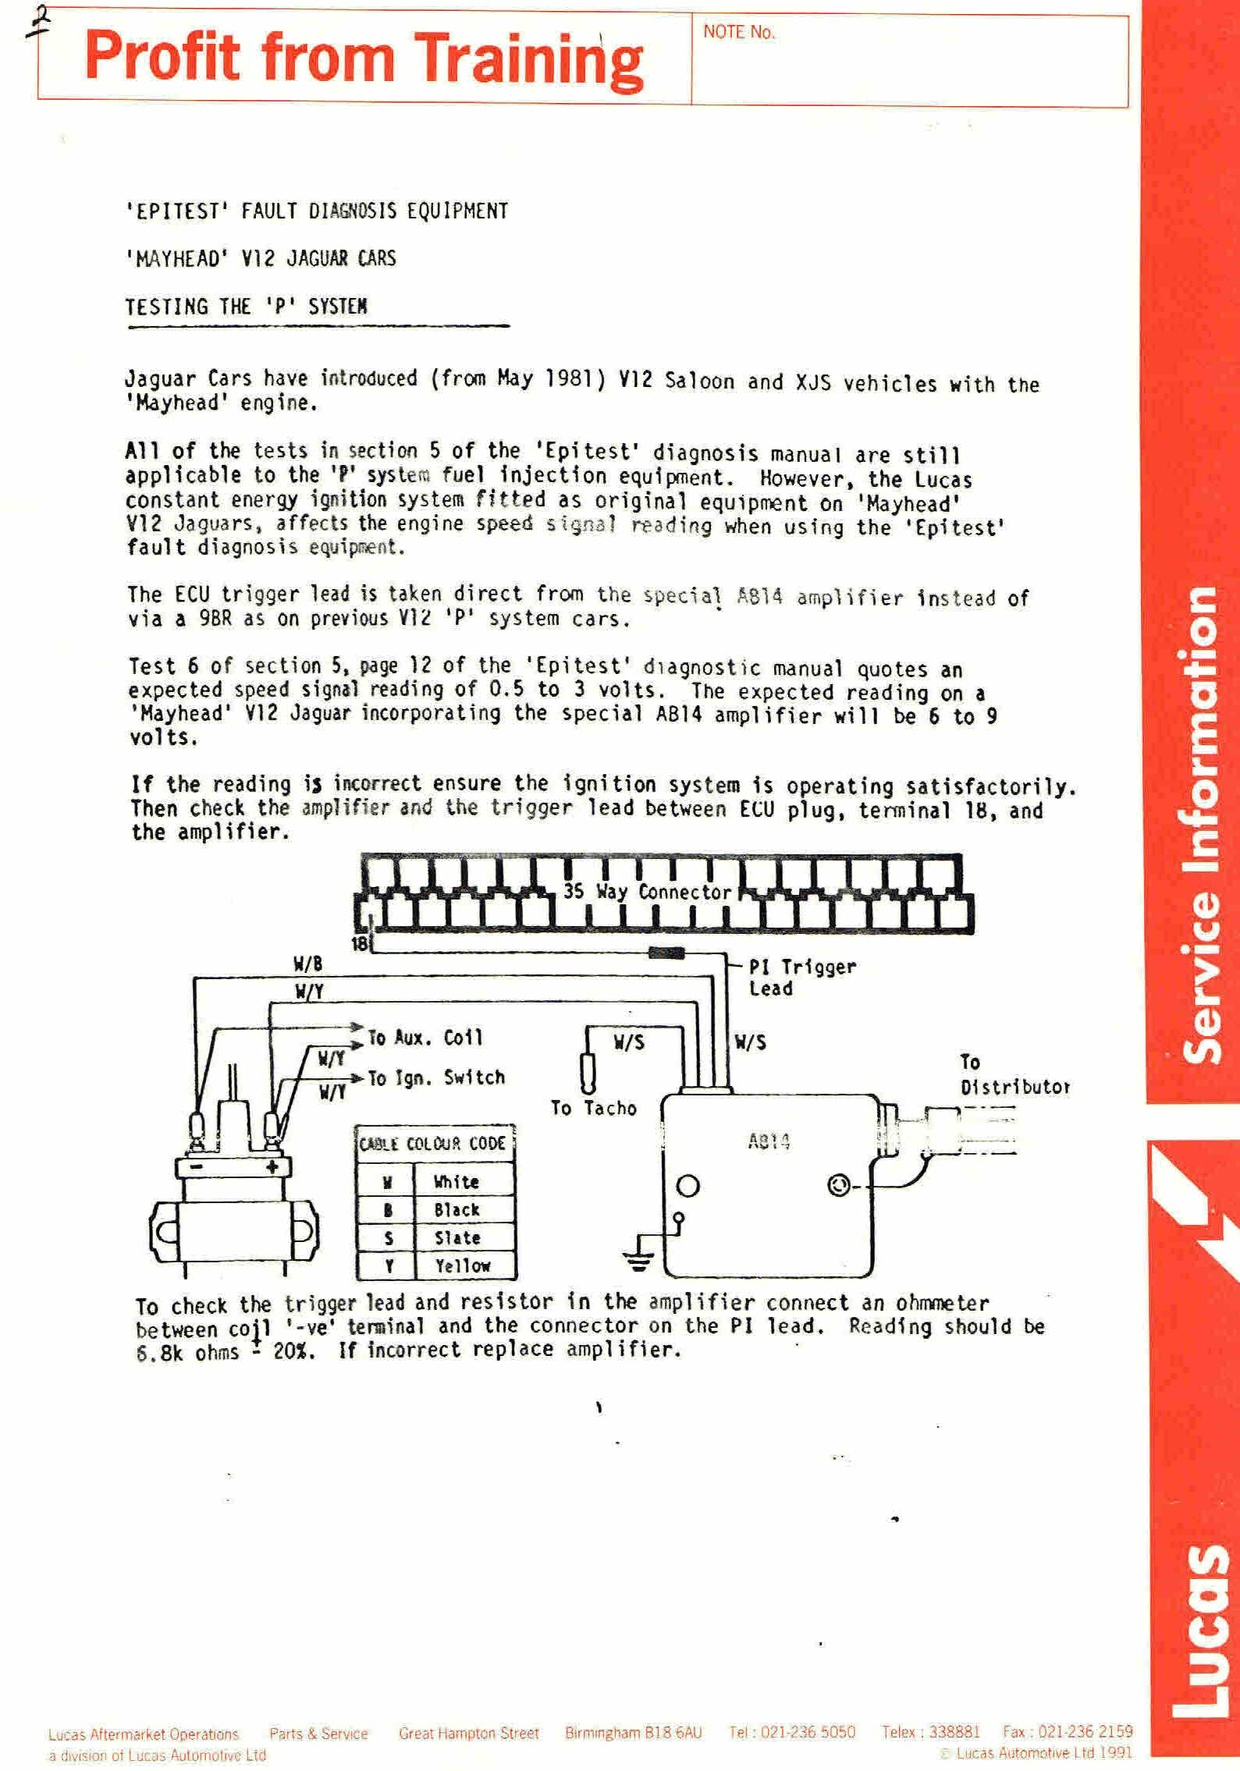 Ac5 Alternator Wiring Diagram : Lucas electronic ignition training manuals service not